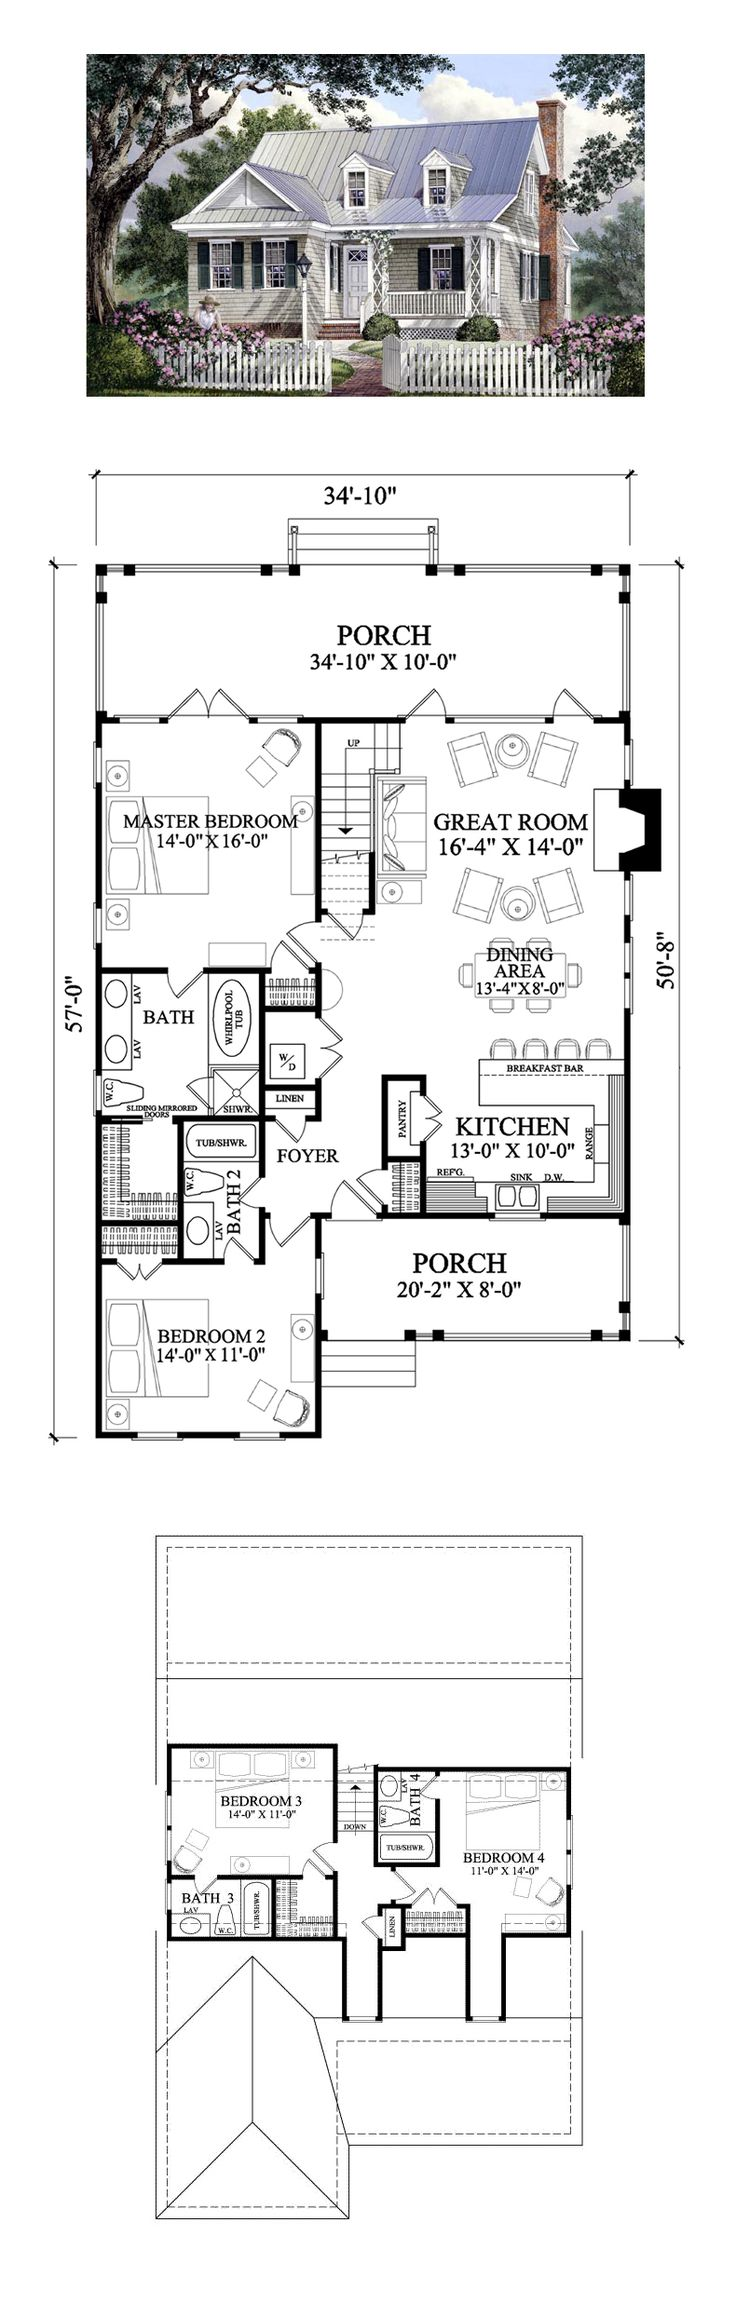 Traditional English Cottage House Plans best 25+ cottage house plans ideas on pinterest | small cottage